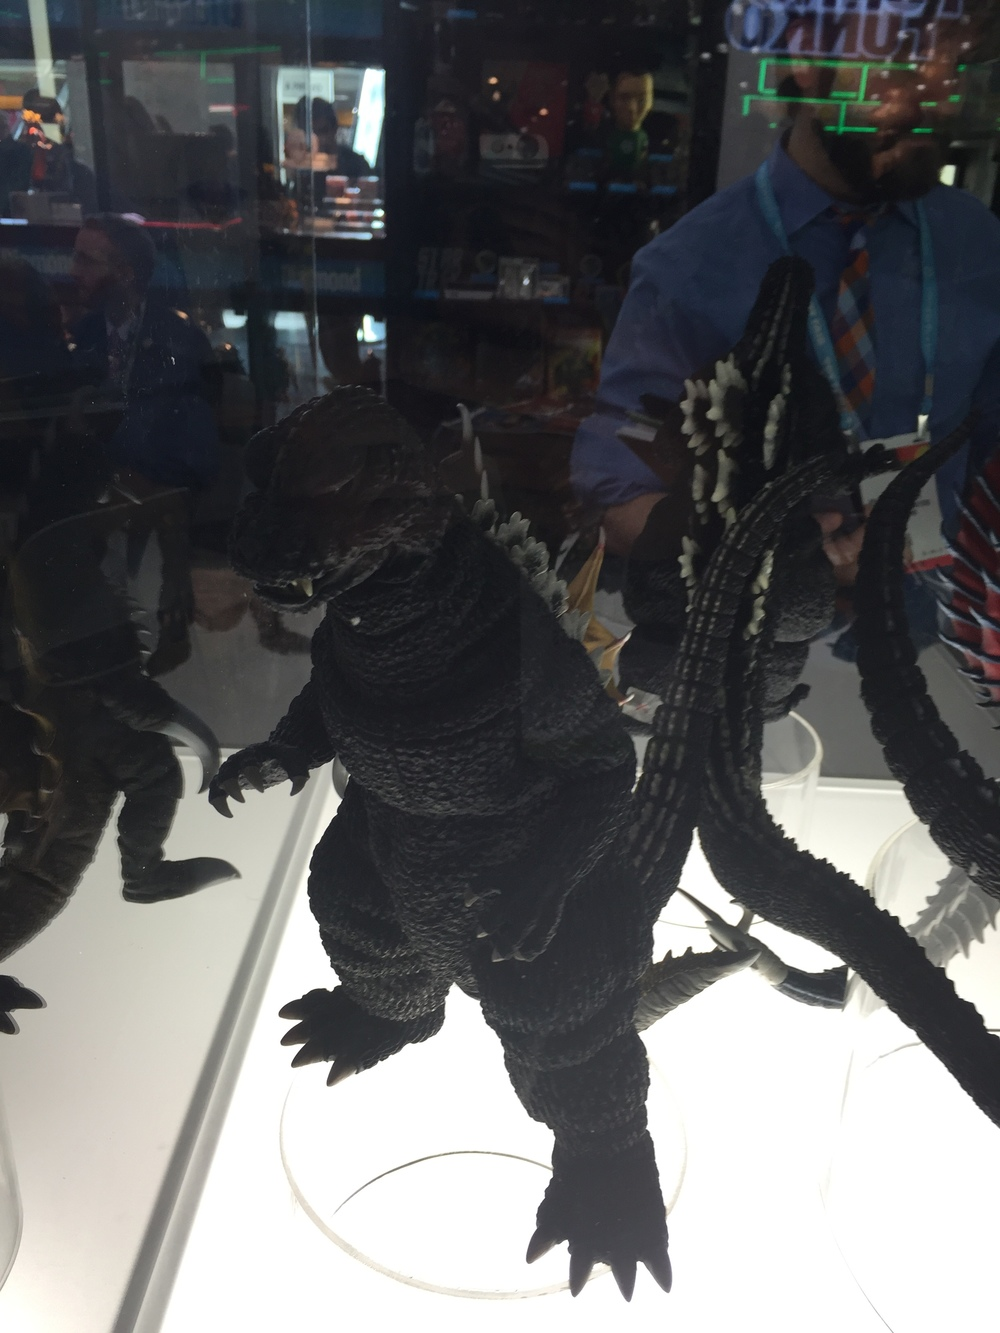 Godzilla'84 No ETA, No MSRP. MAY have a hinged jaw joint...